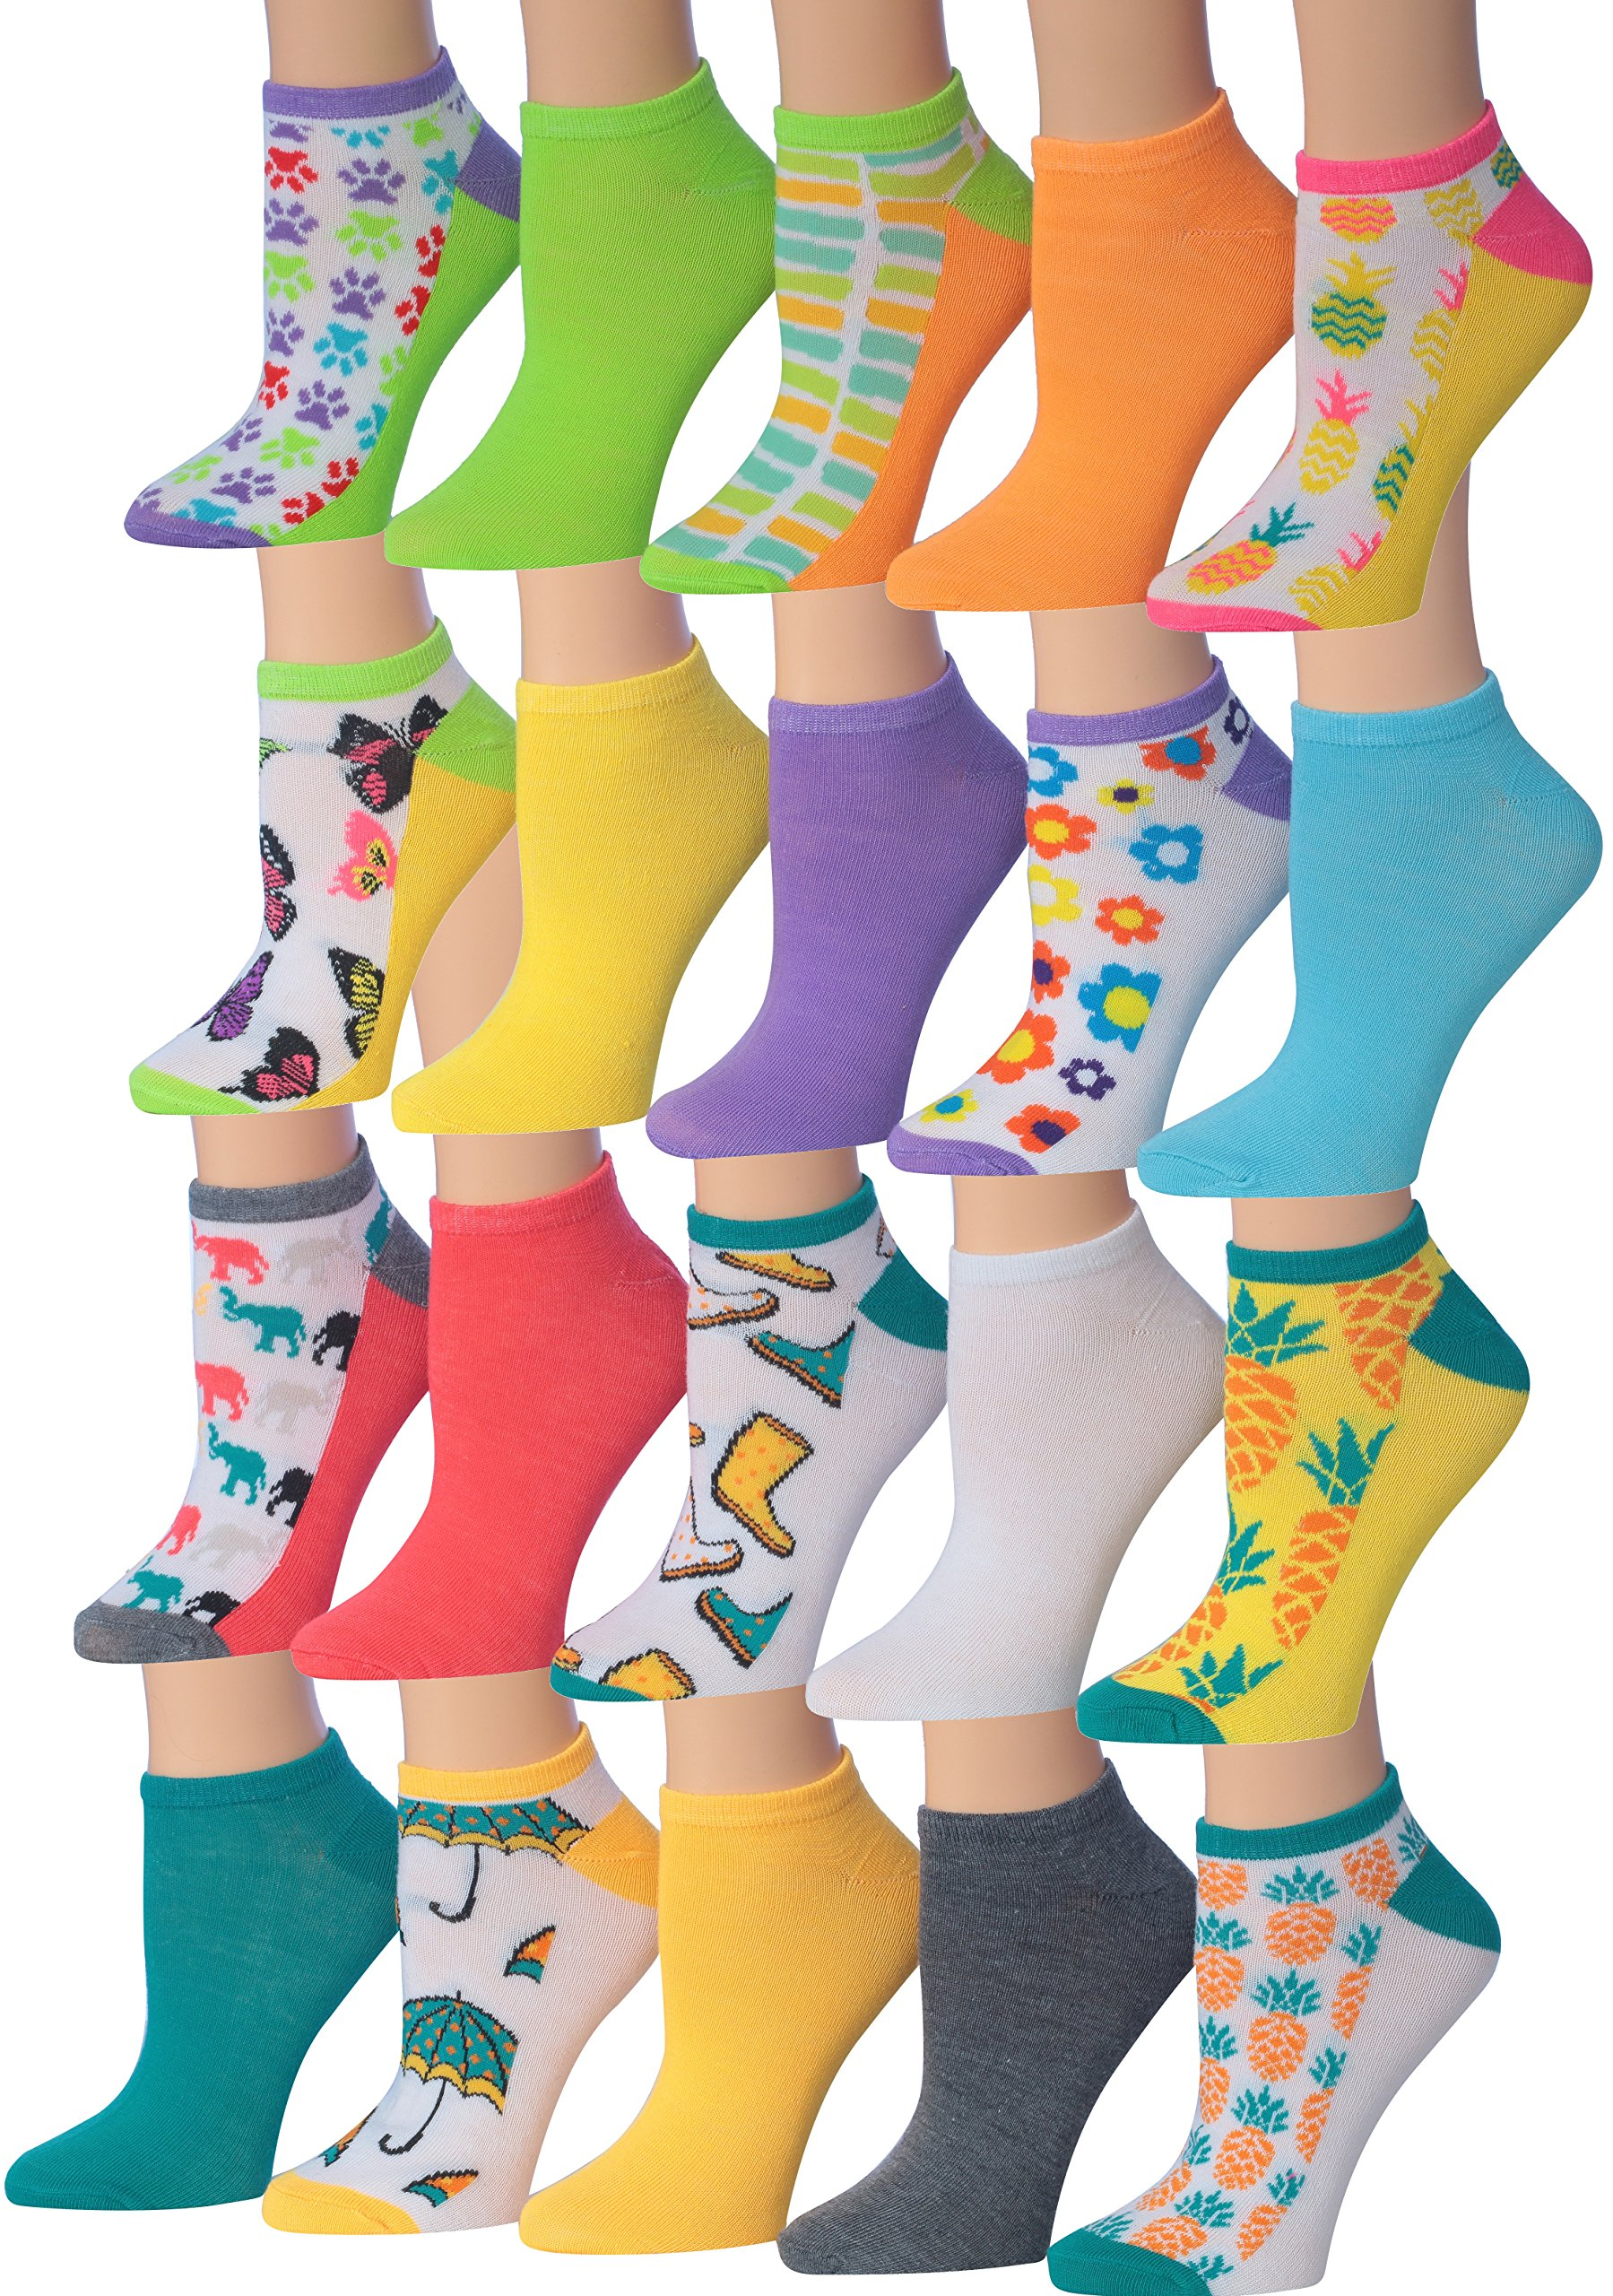 Tipi Toe Women's 20 Pairs SUMMER Fashion Trends Colorful No Show Socks Low Cut Socks, (sock size 9-11) Fits shoe size 6-9, NS78-79